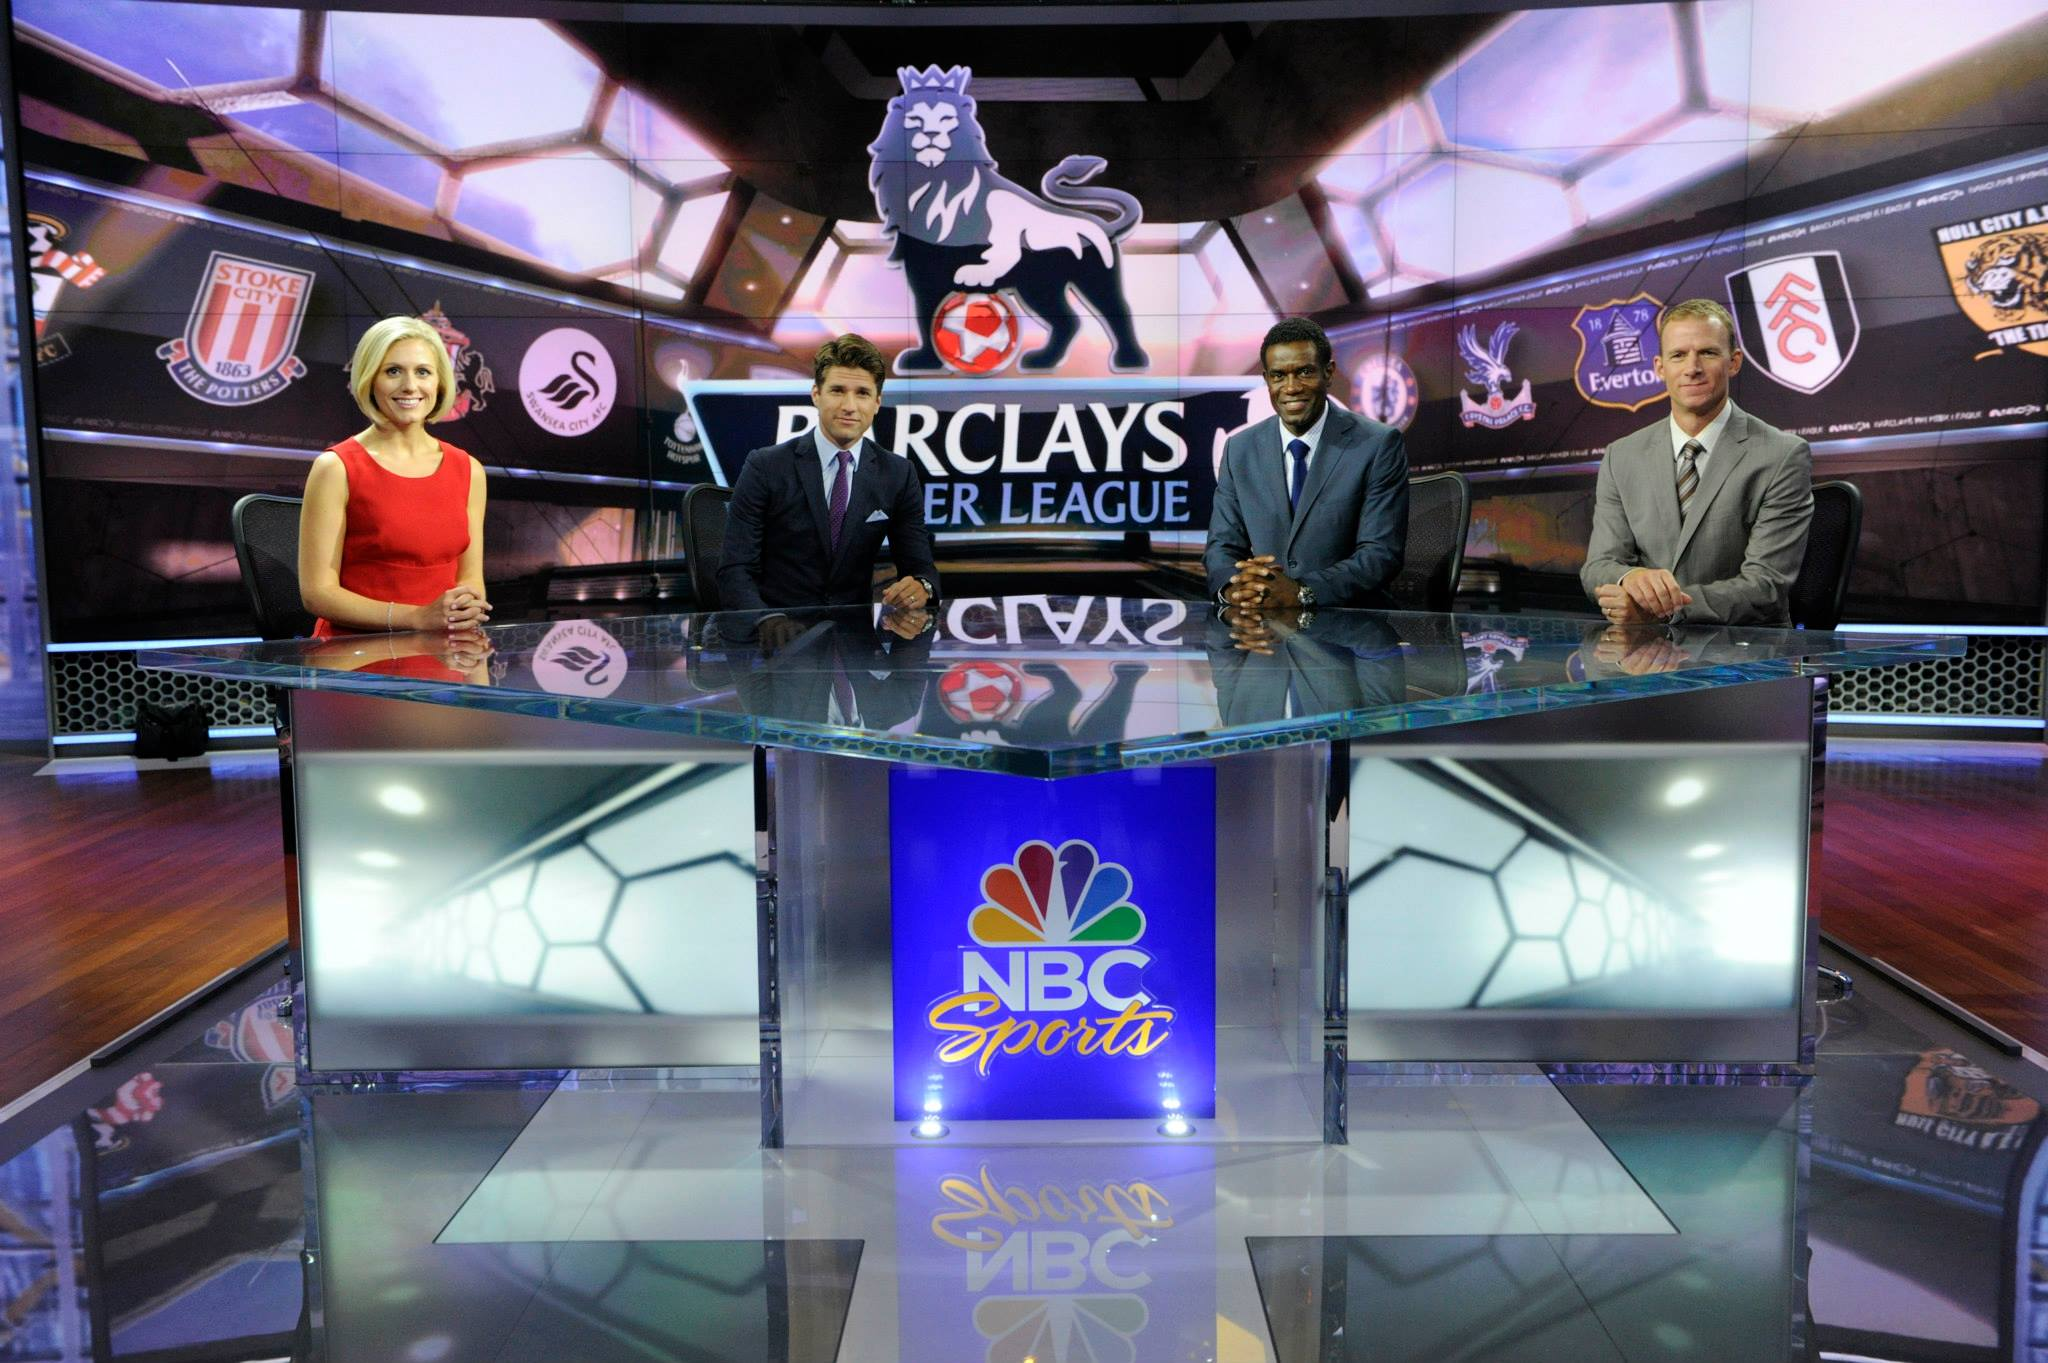 NBC Sports raises the bar by sending broadcast team to England for Premier League TV coverage